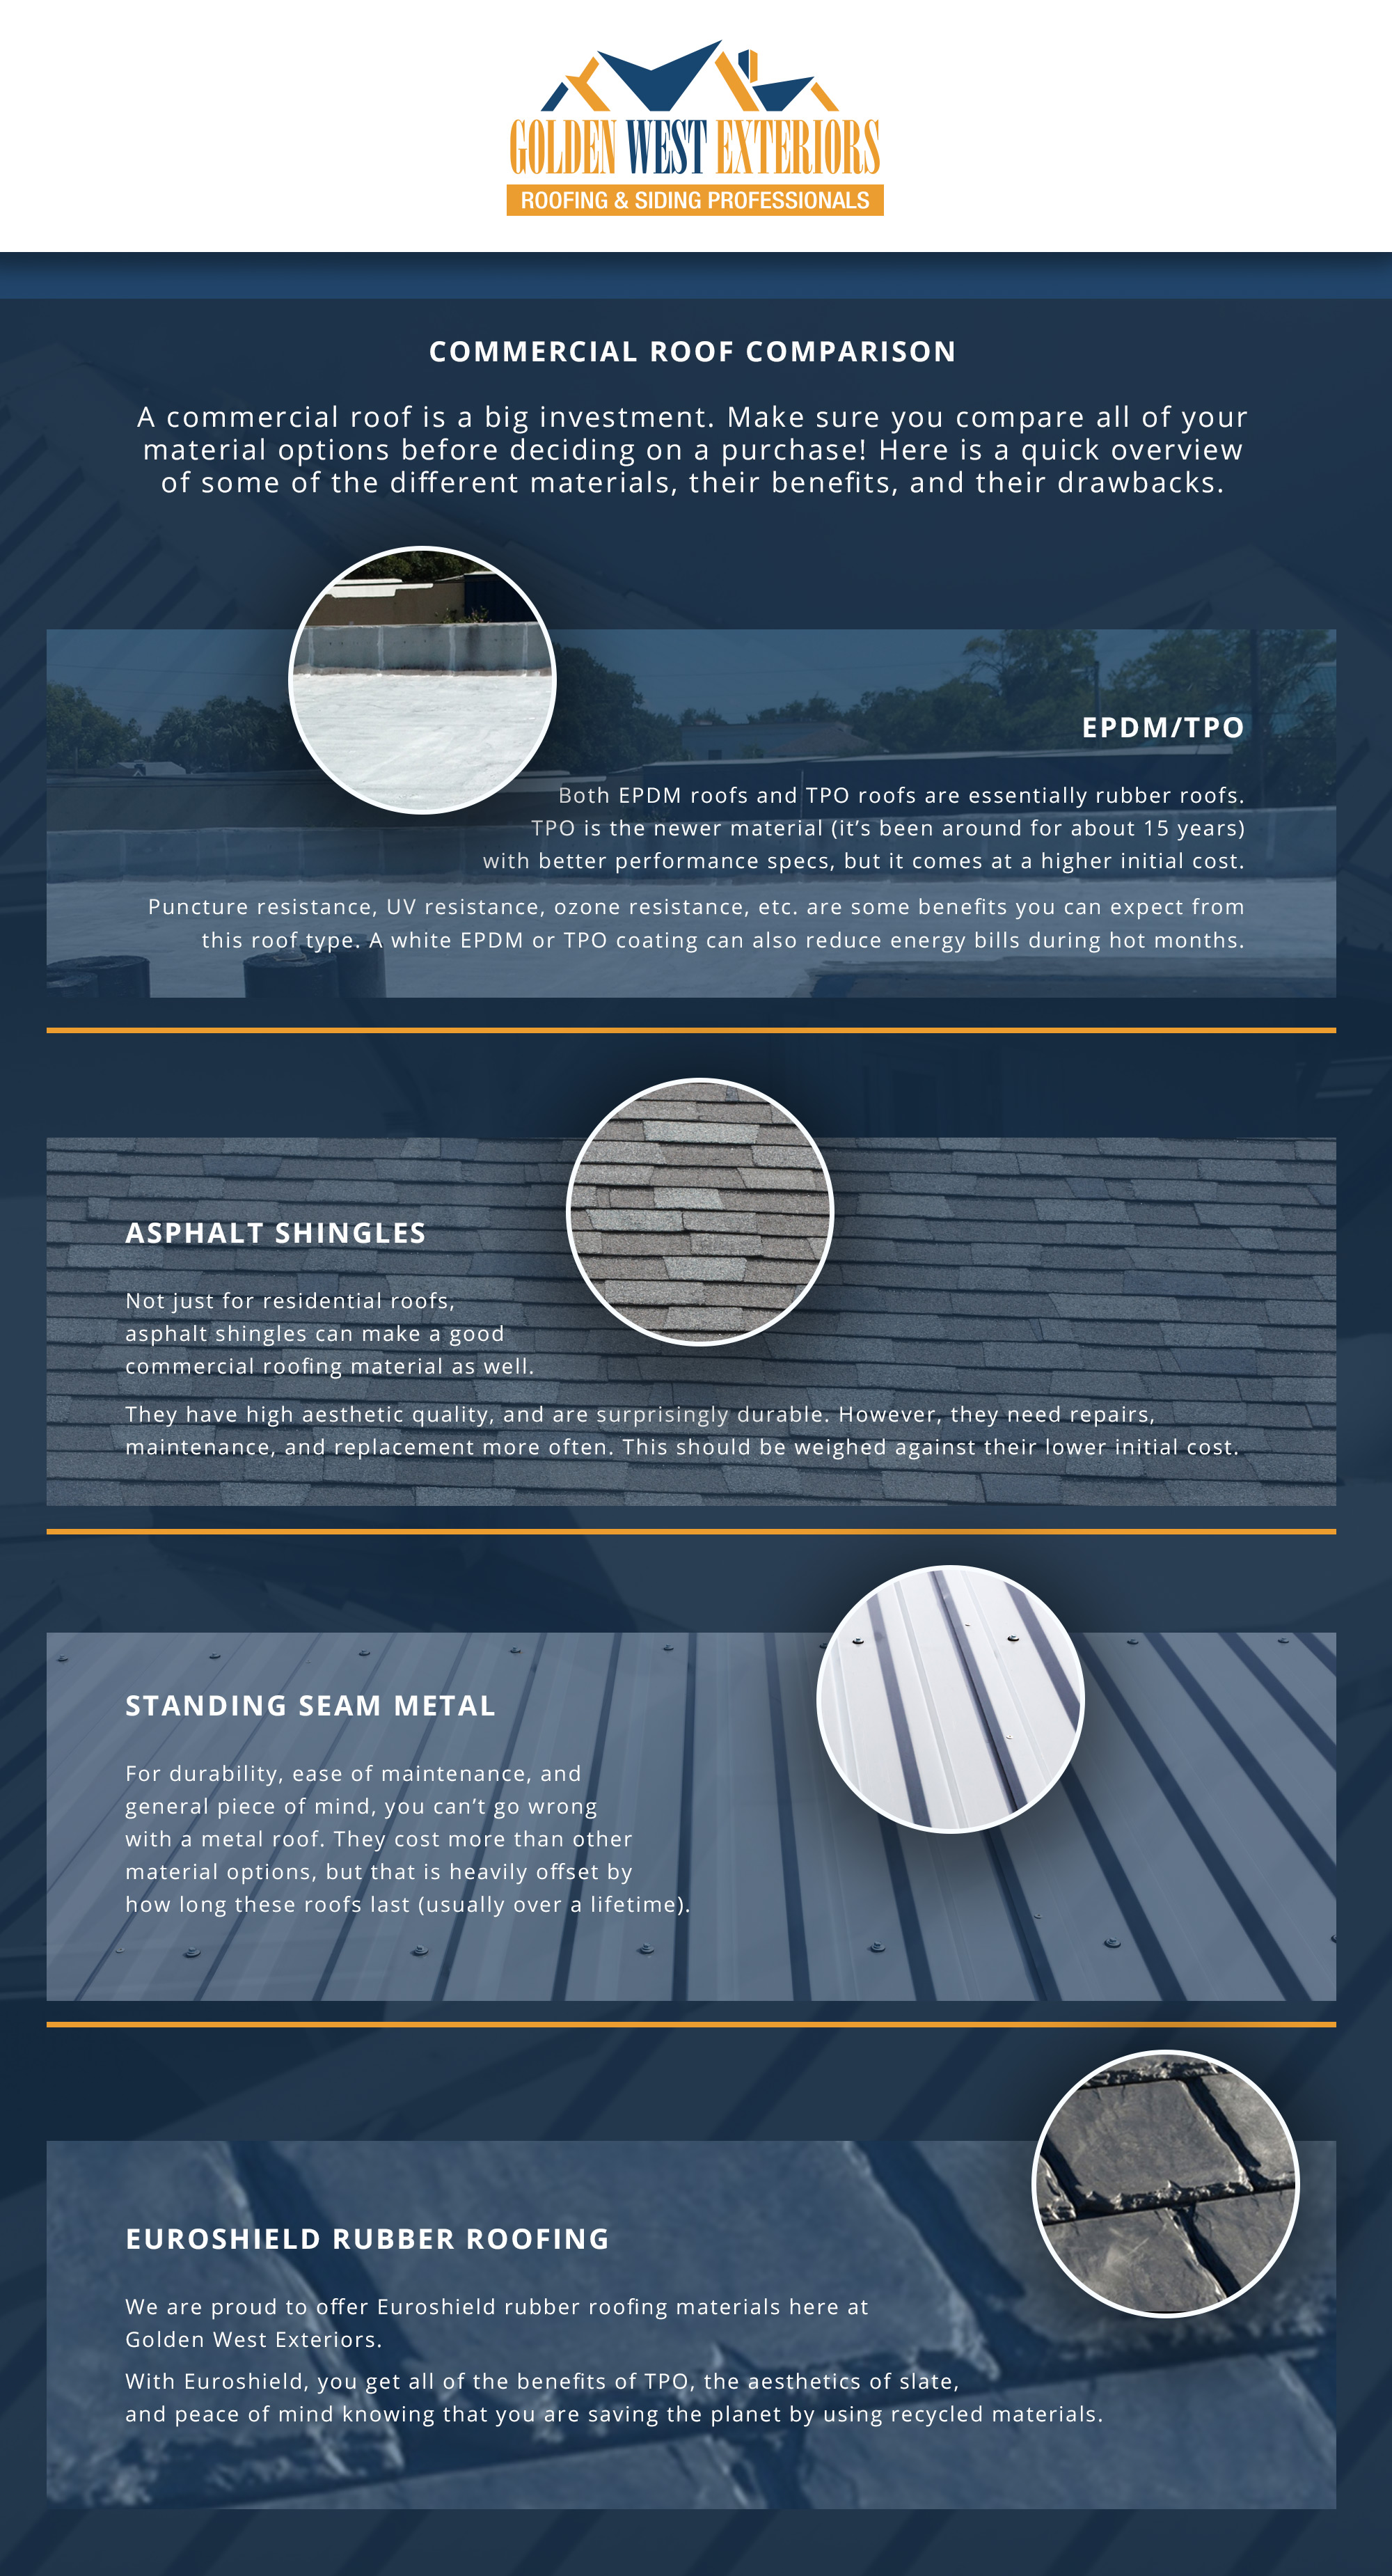 Commercial Roof Comparison